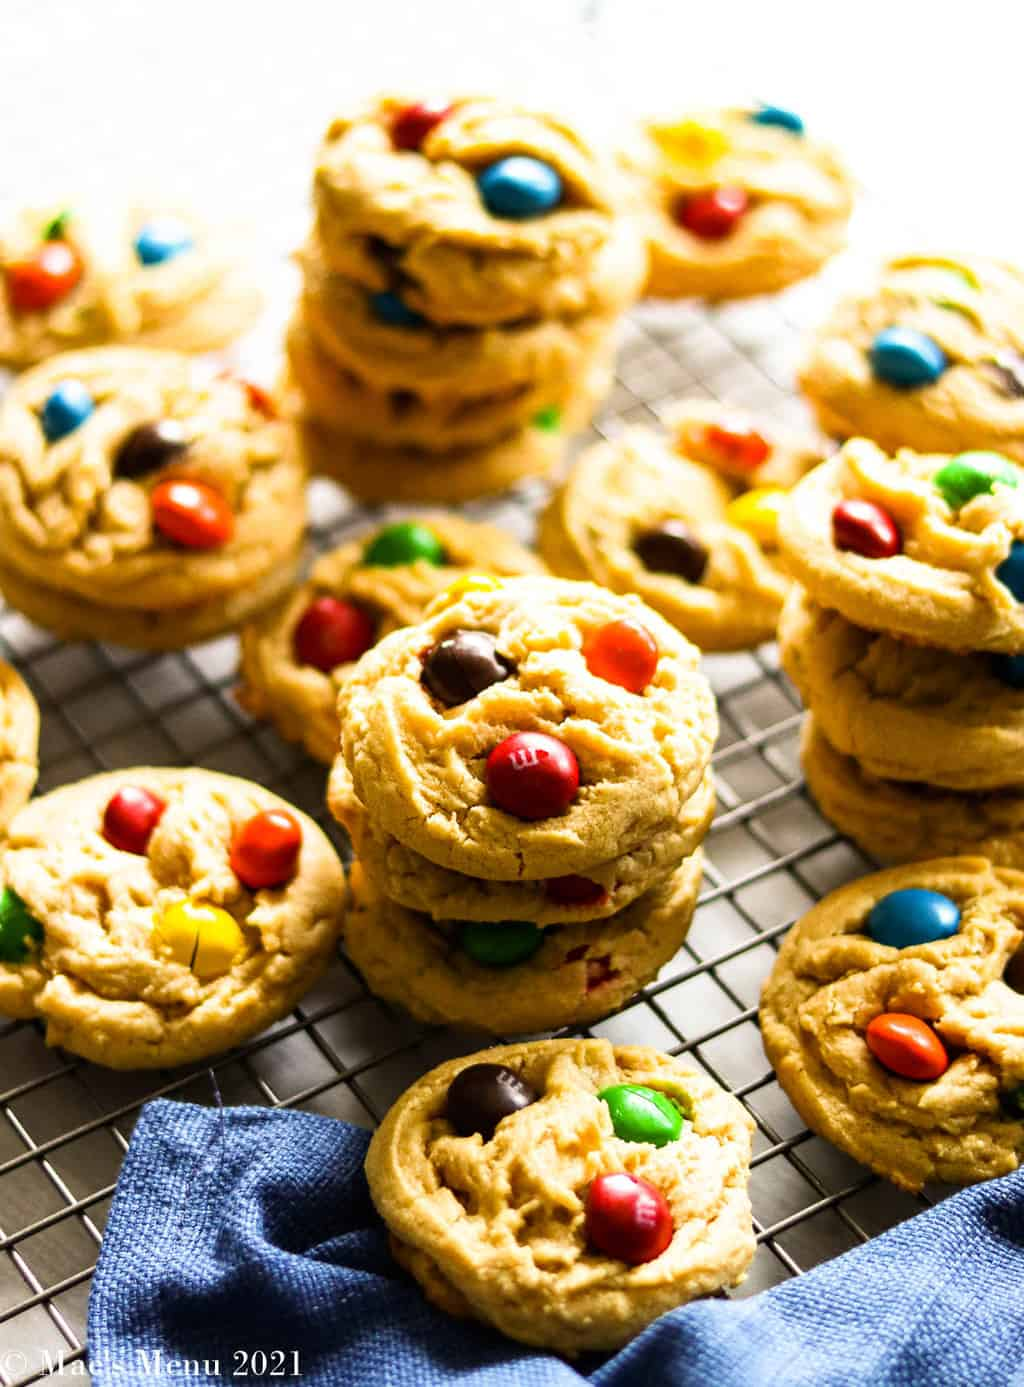 stacks of Peanut butter M&M cookies on a cooling rack by a blue towel